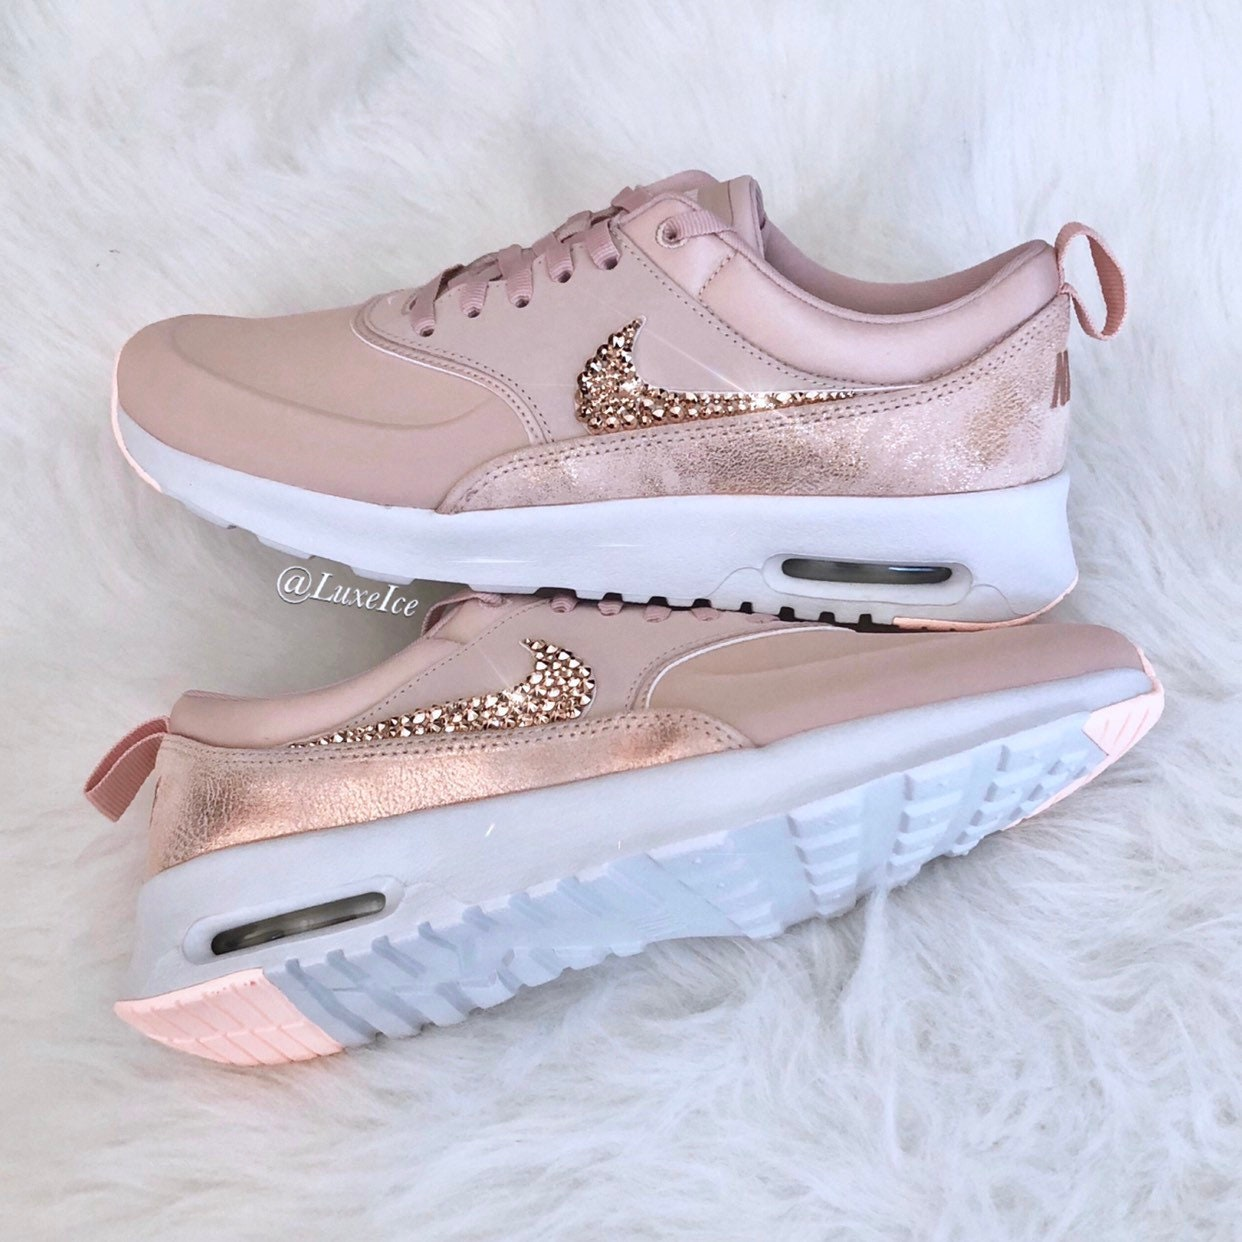 promo code 47669 be501 Swarovski Nike Air Max Thea Premium Particle Beige Summit   Etsy